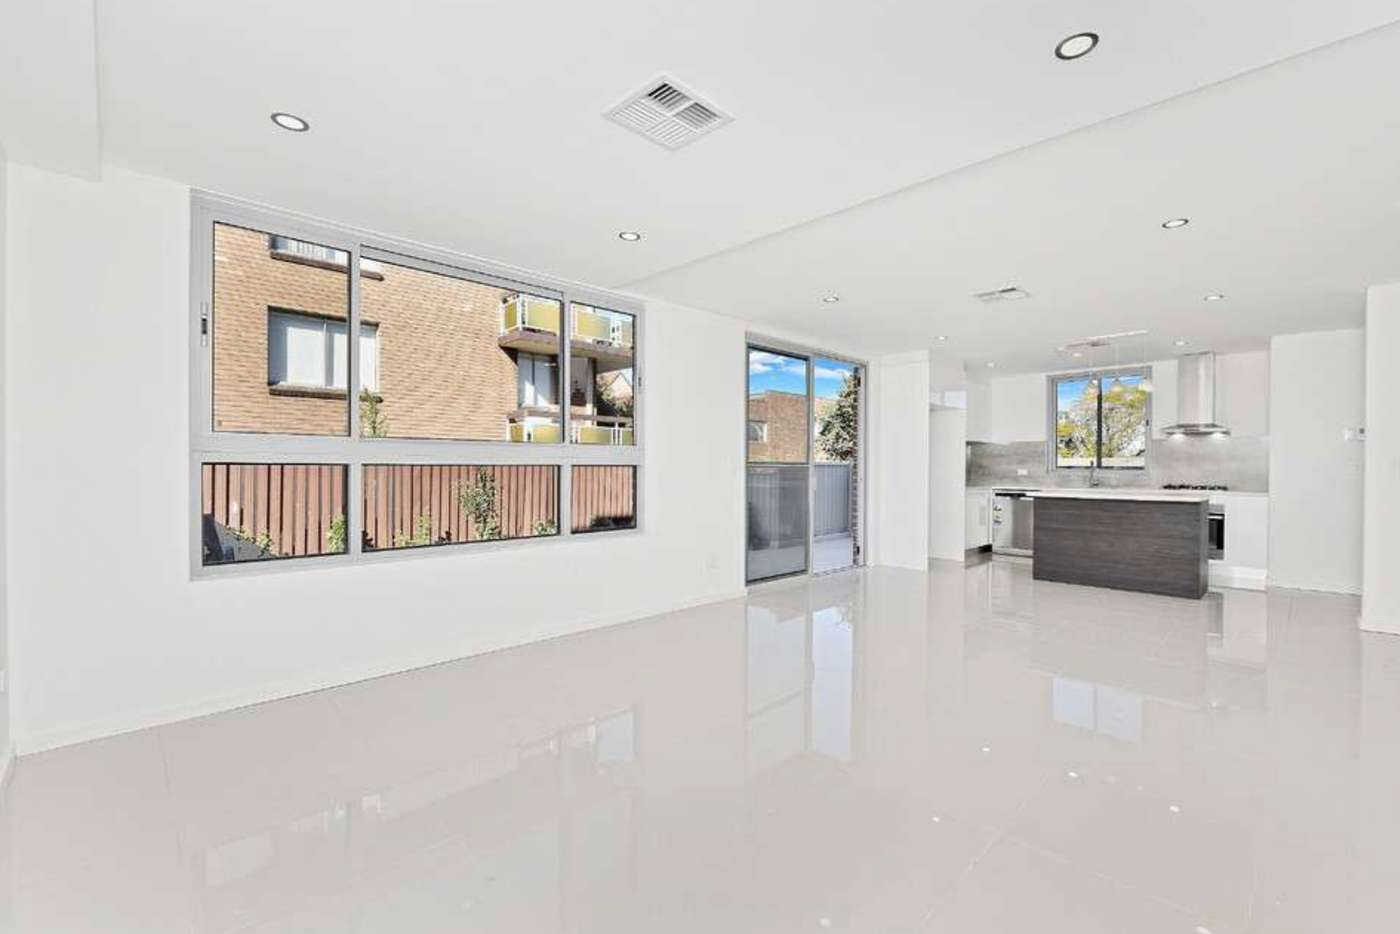 Main view of Homely townhouse listing, 5 Concord Lane, North Strathfield NSW 2137